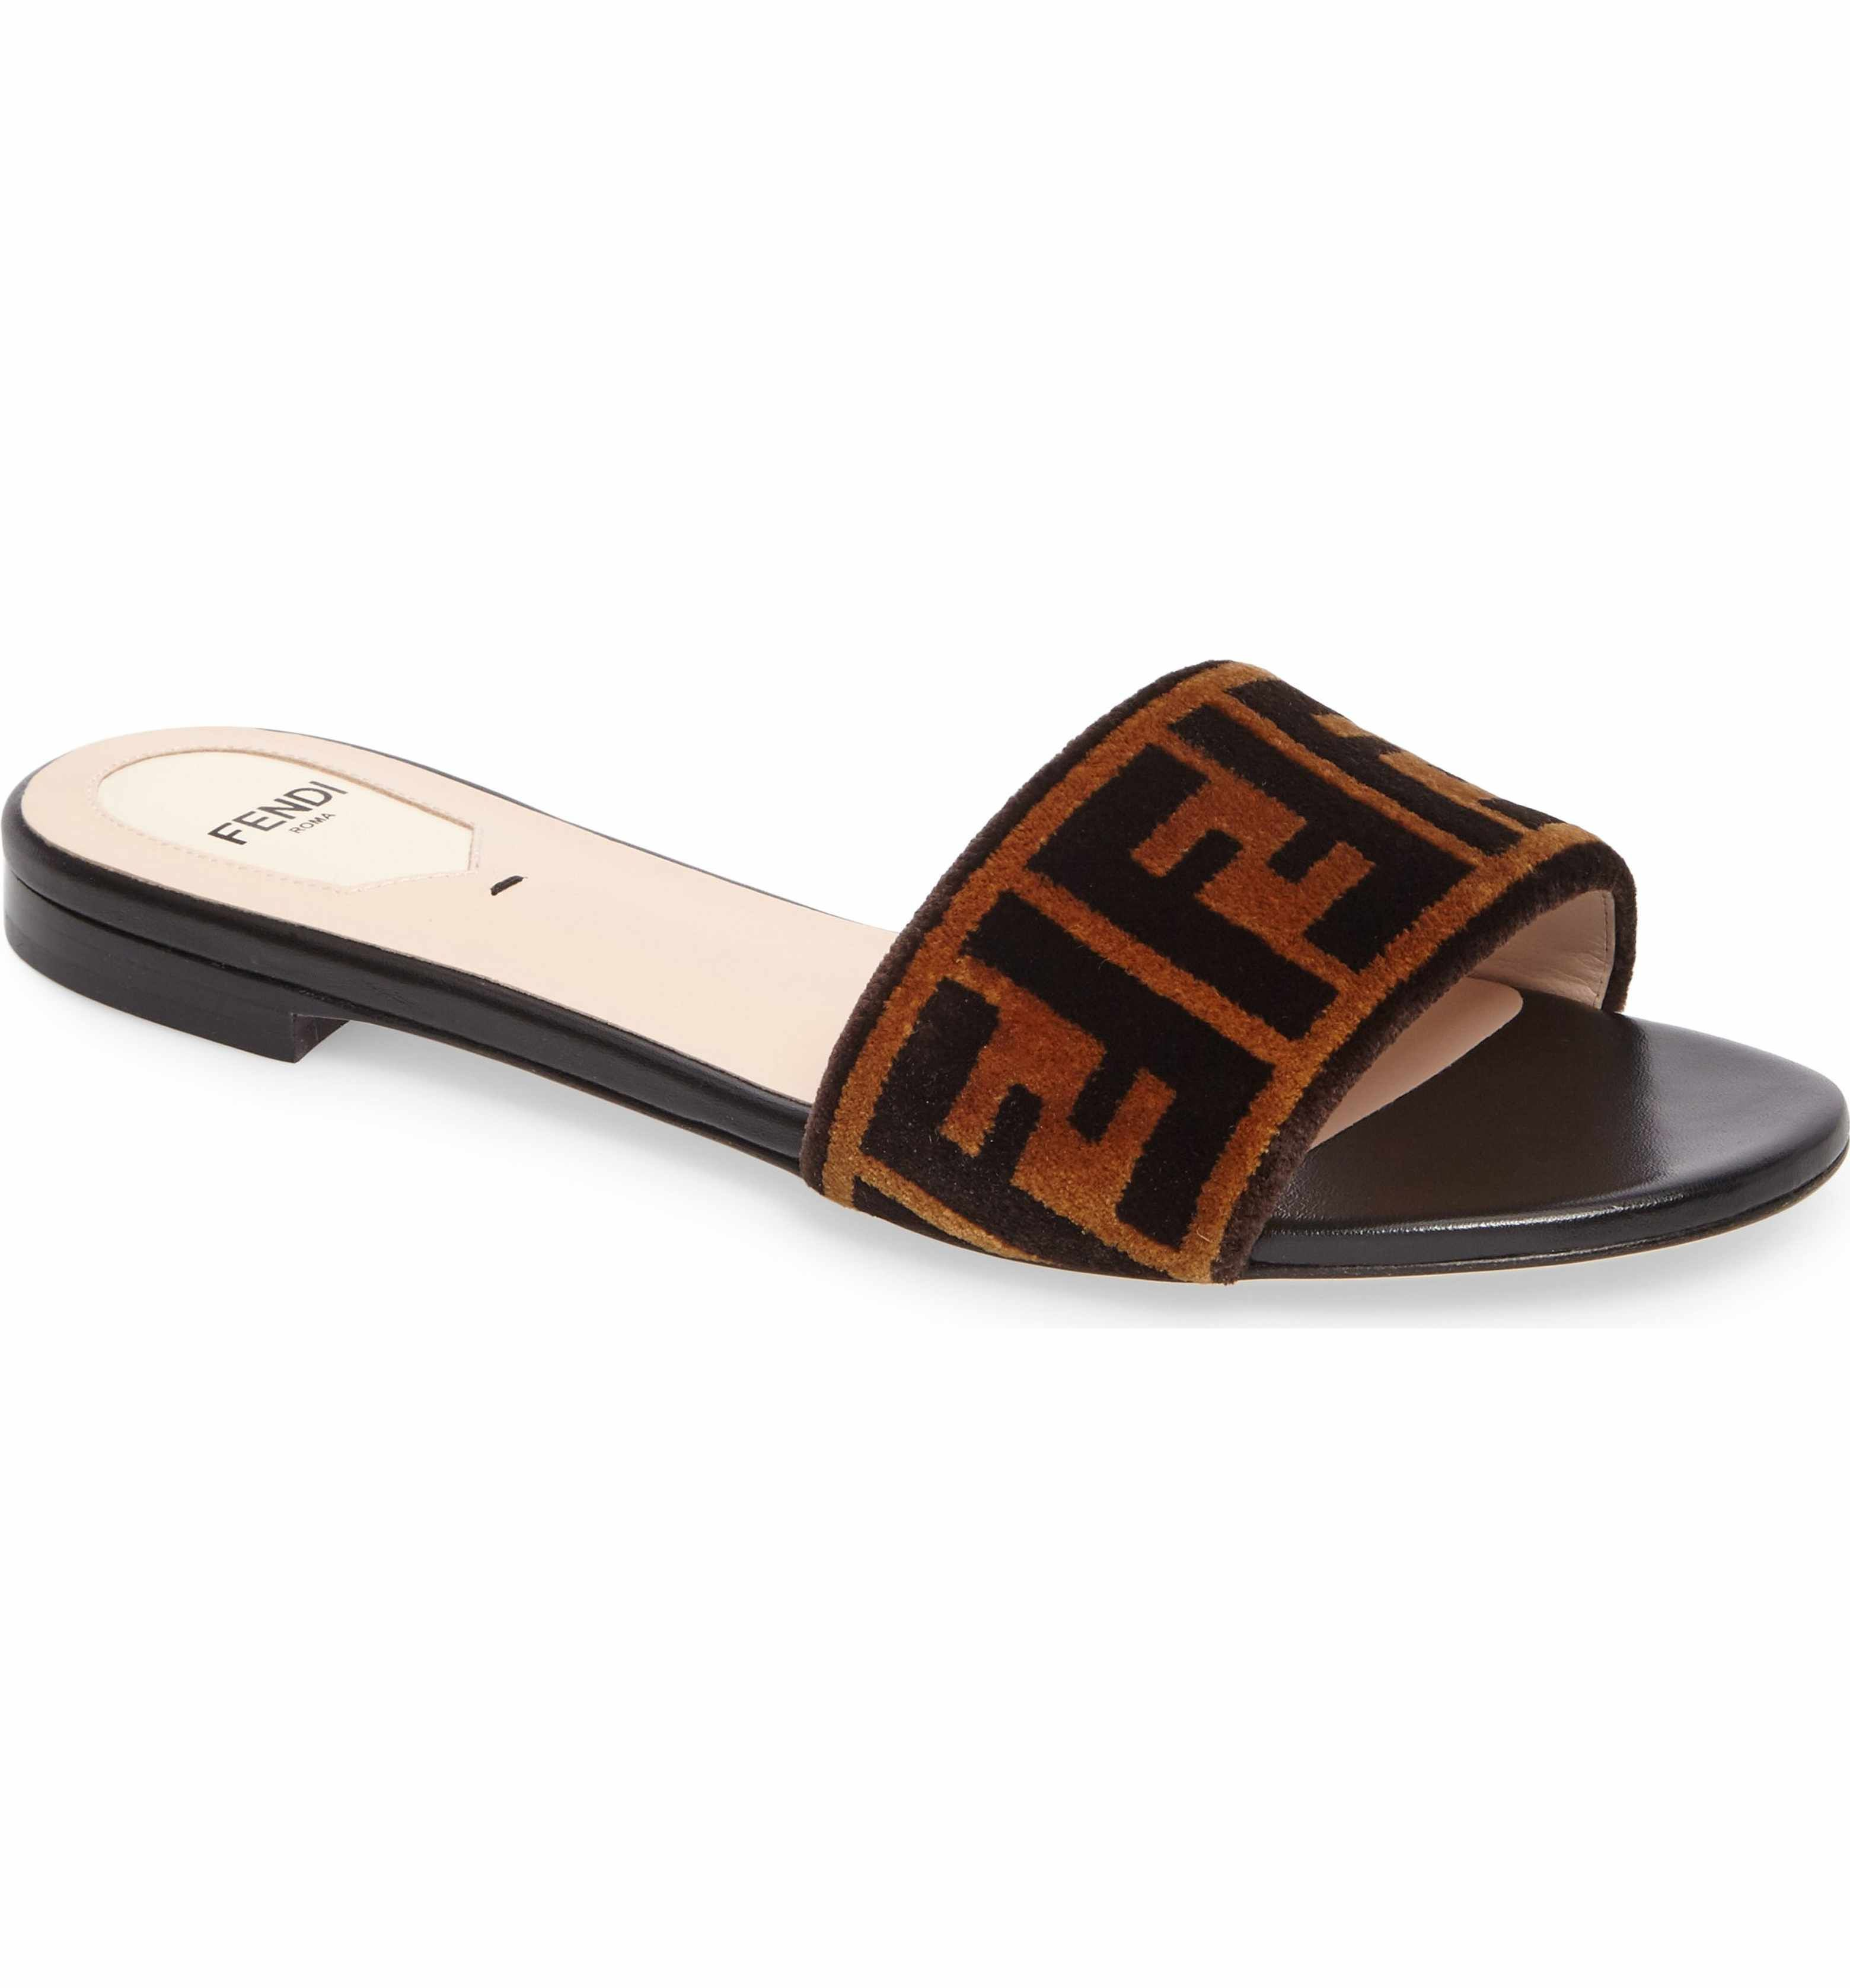 Eastbay Cheap Price 2018 Fendi Velvet Sandals Cheap Pictures Buy Cheap Wide Range Of New Fashion Style Of 2Vkbrj6L